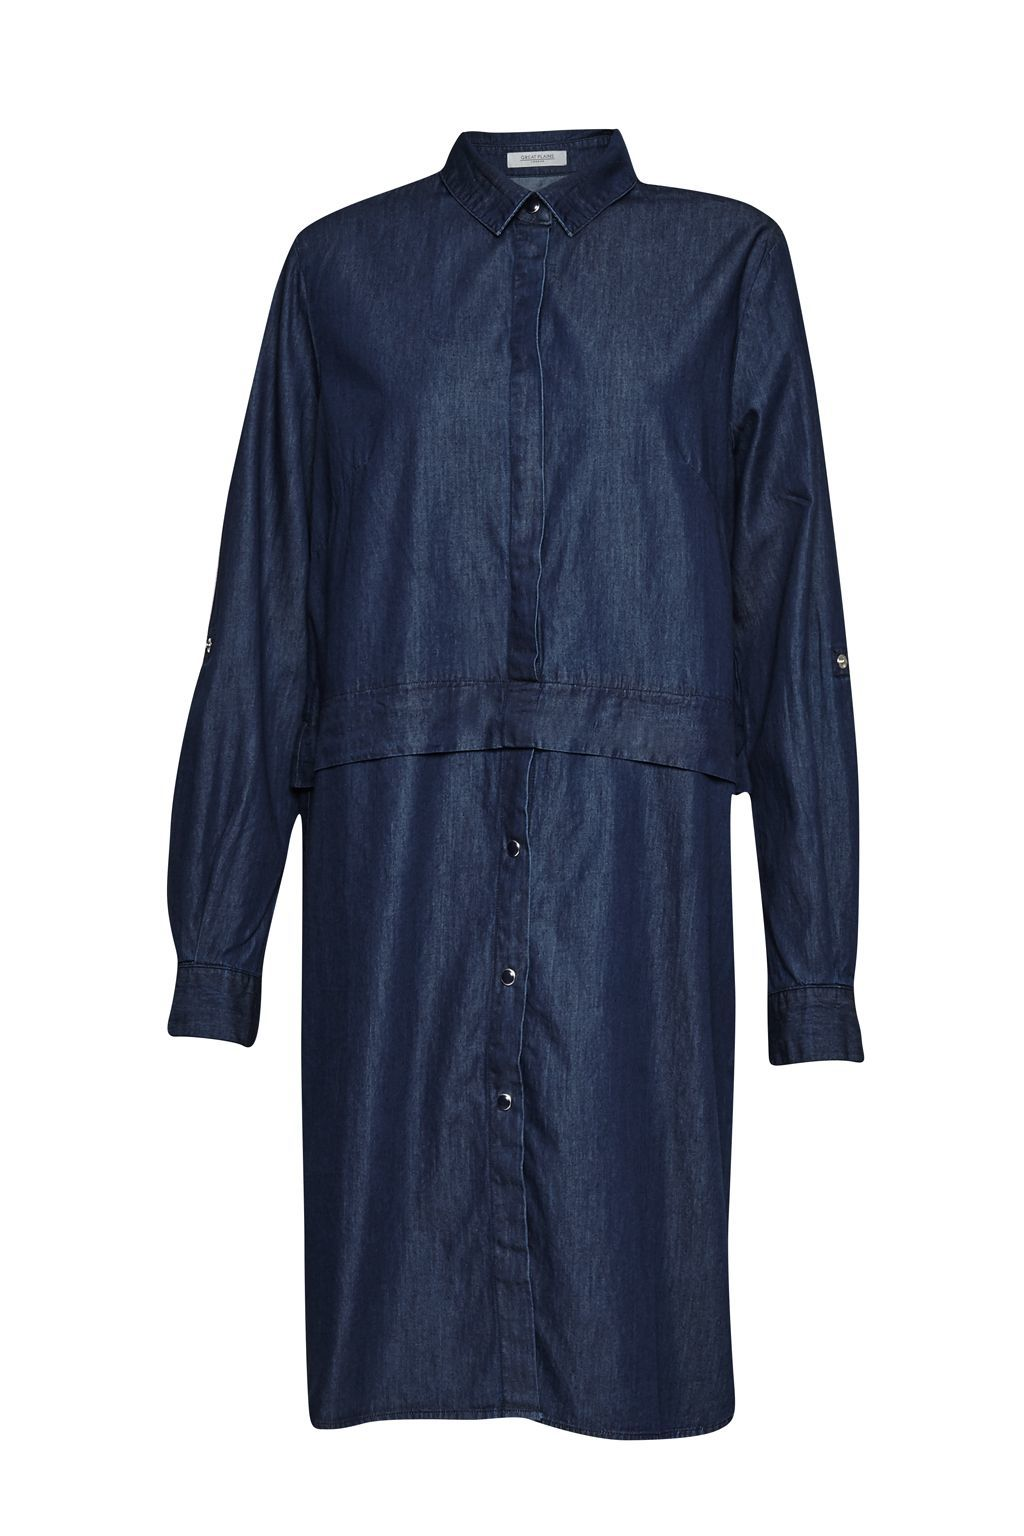 Lightweight Denim Shirt Dress, Blue - style: shirt; neckline: shirt collar/peter pan/zip with opening; pattern: plain; predominant colour: navy; occasions: casual; length: just above the knee; fit: body skimming; fibres: cotton - 100%; sleeve length: long sleeve; sleeve style: standard; texture group: denim; pattern type: fabric; season: s/s 2016; wardrobe: basic